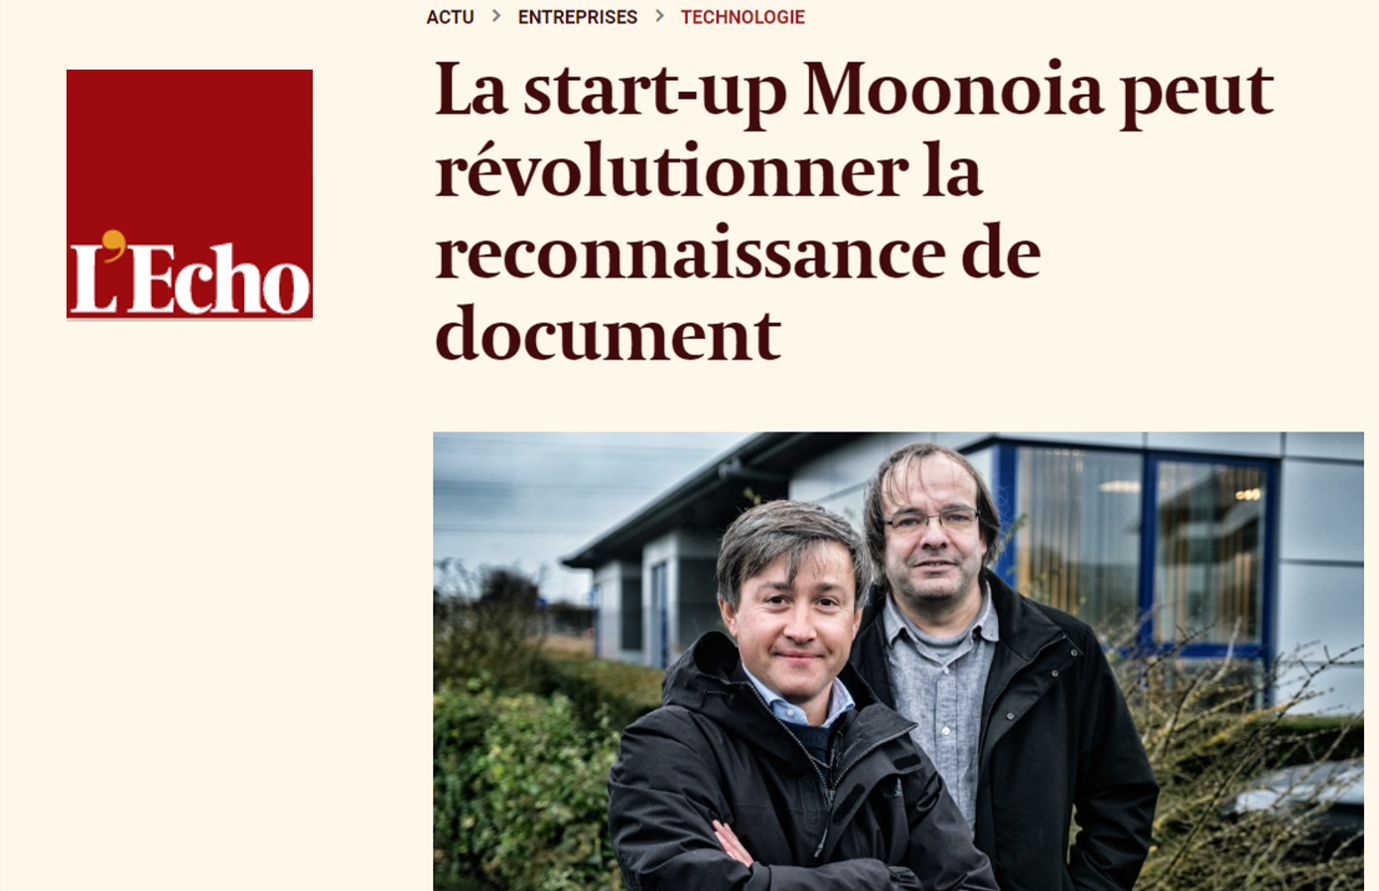 Press release: Moonoia becomes new entity, receives funding